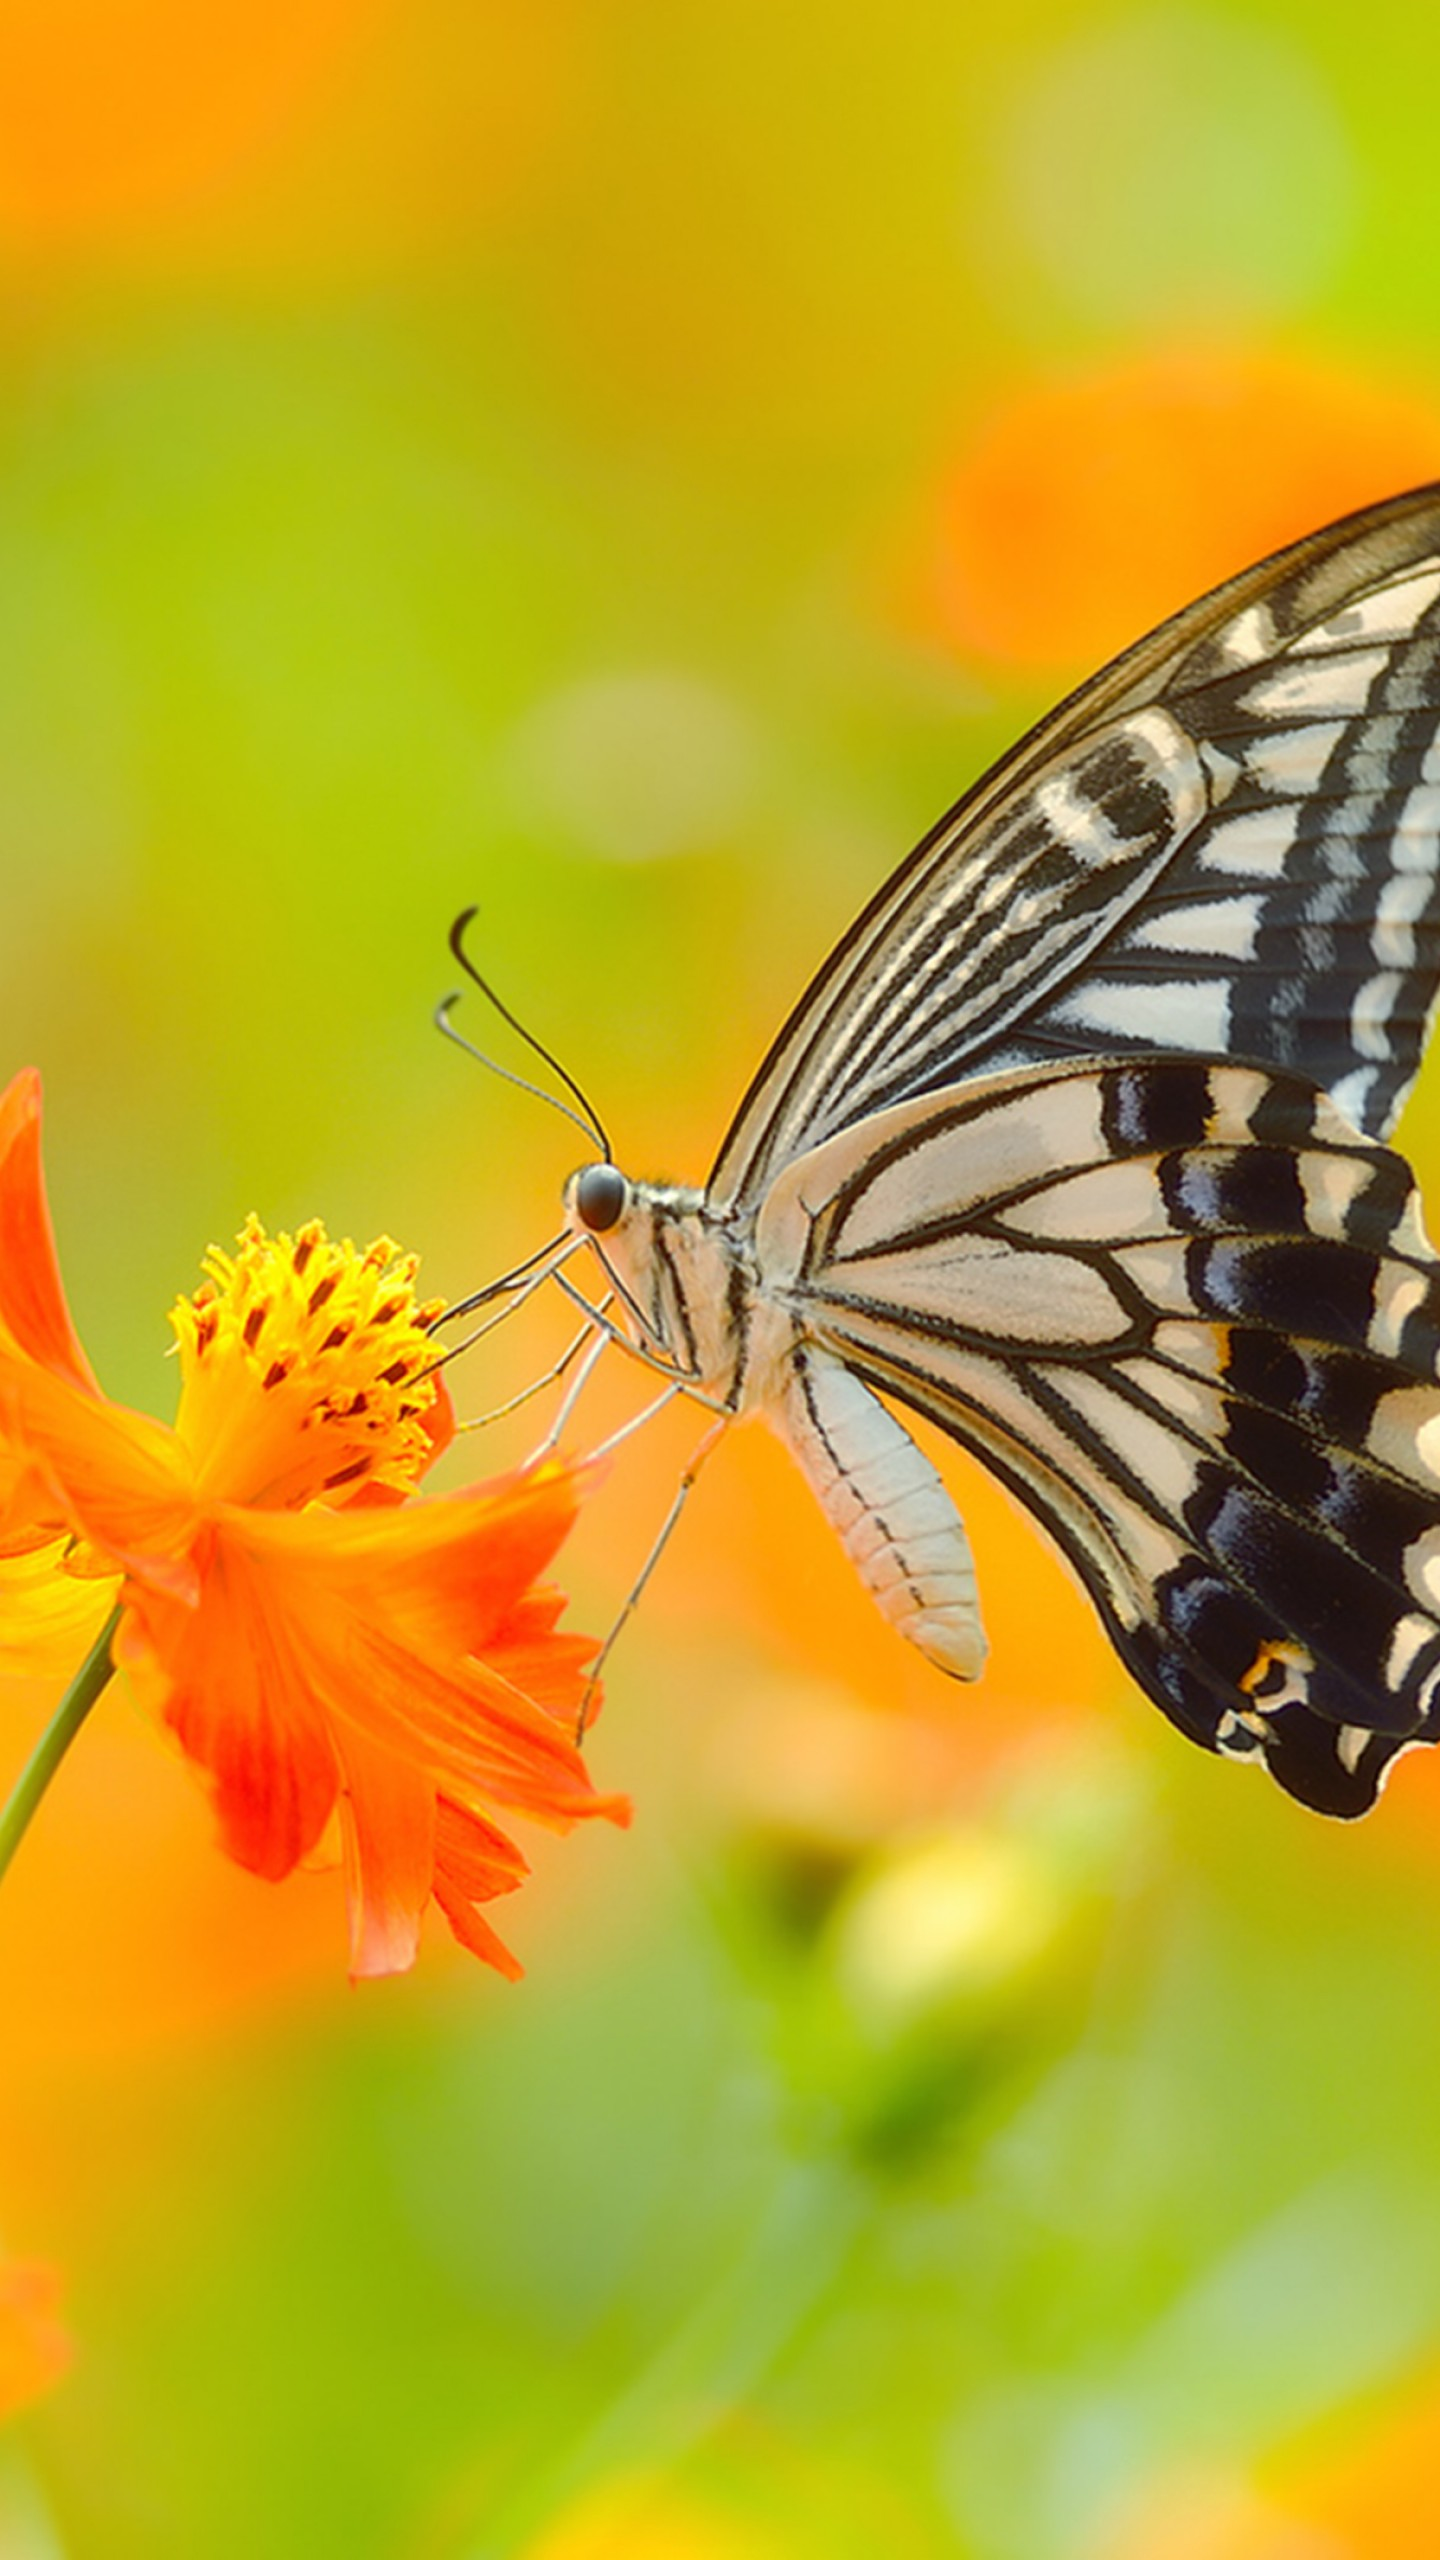 Beautiful Wild Animals Wallpapers Wallpaper Butterfly 5k 4k Wallpaper Colorful Flowers